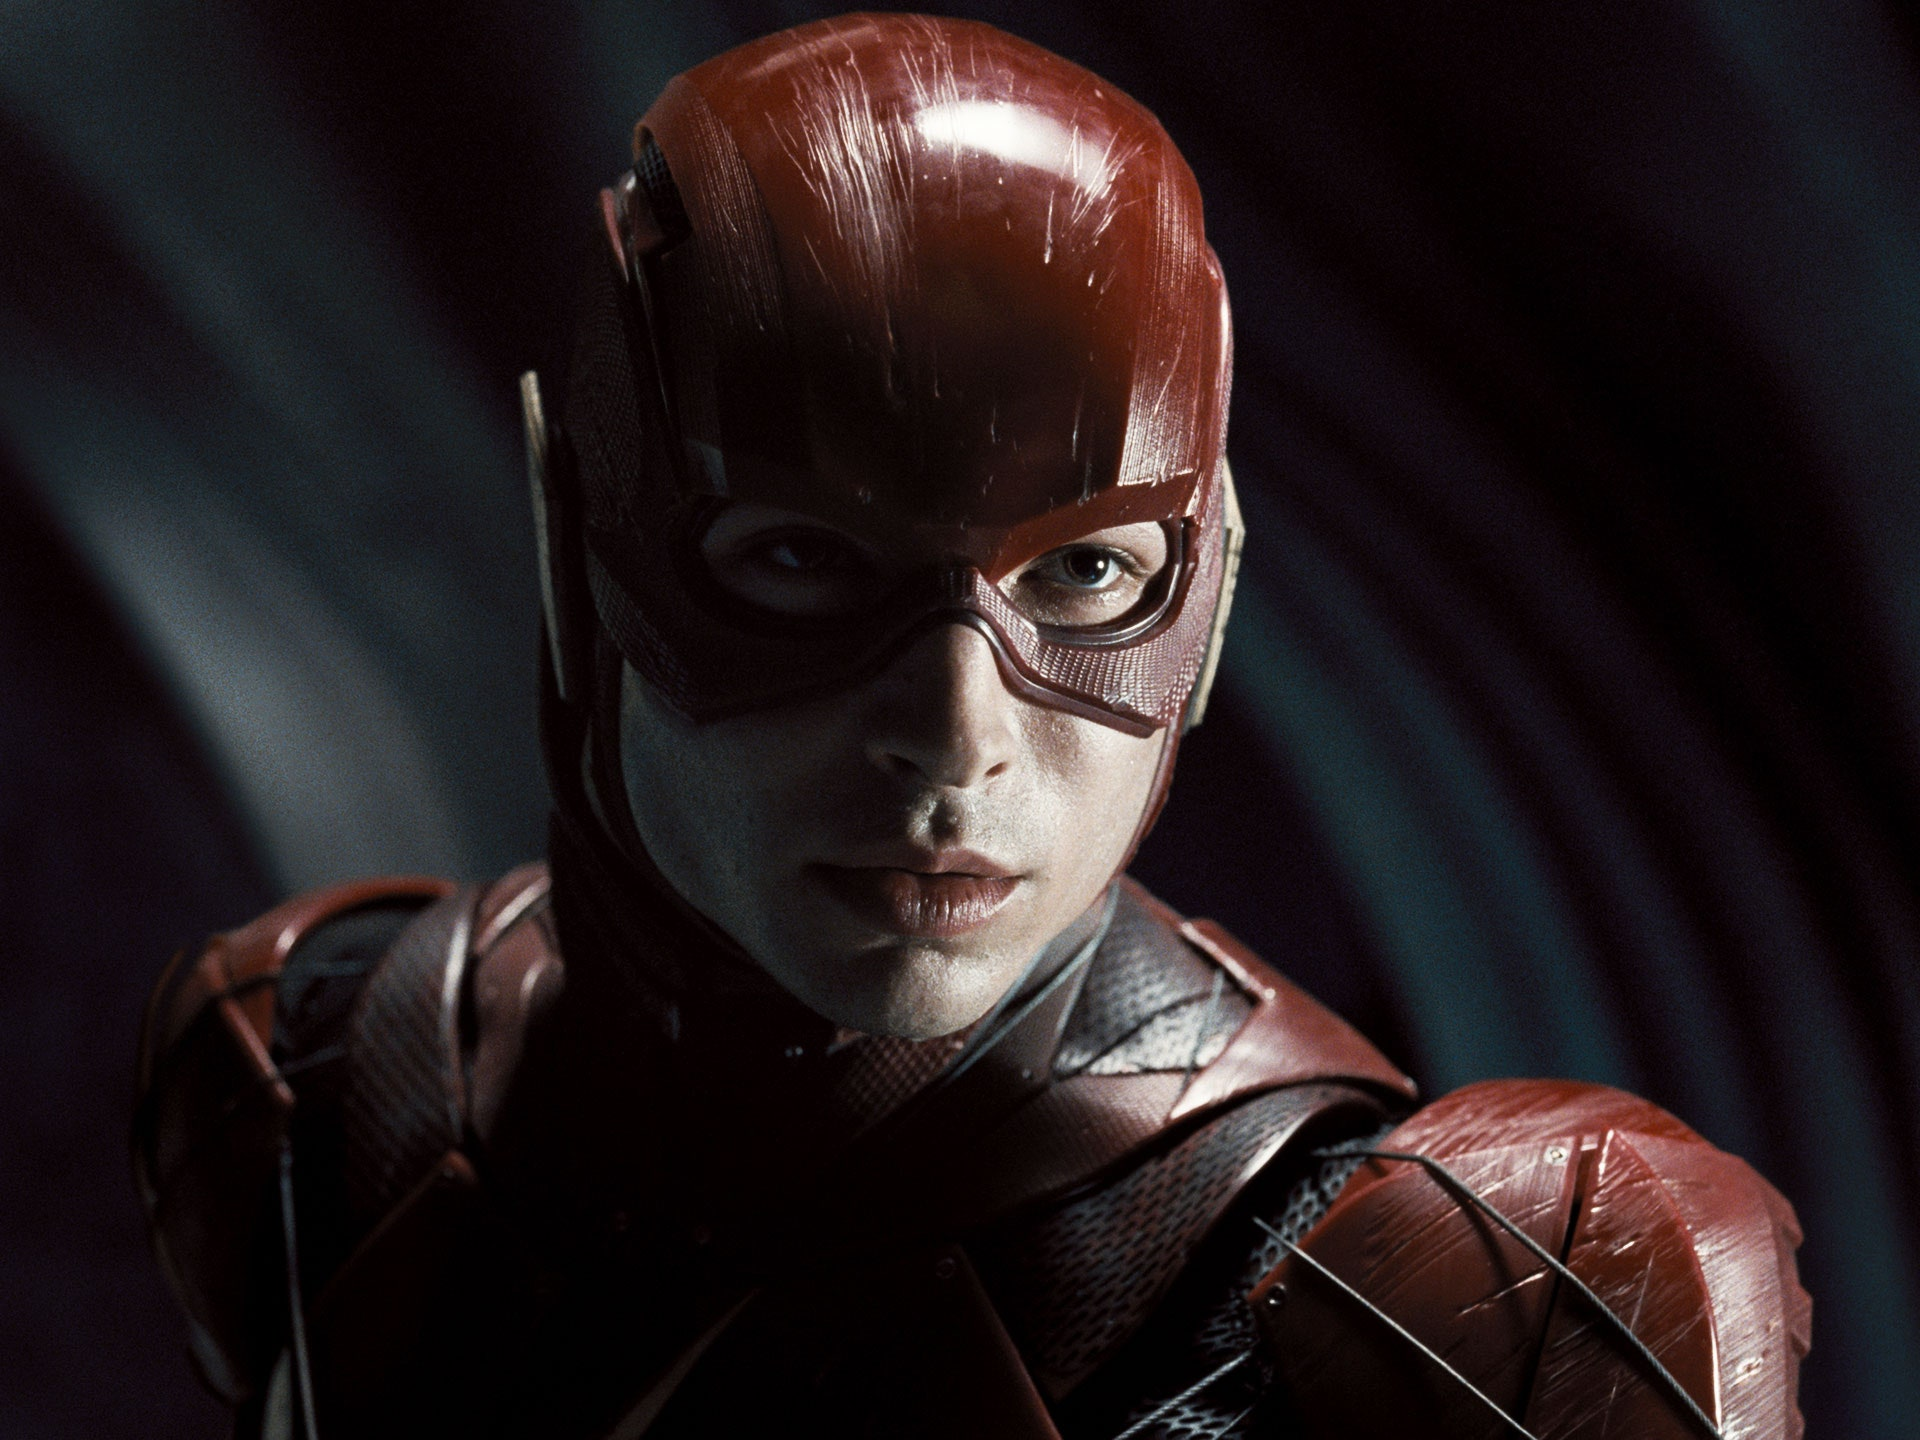 So Can Flash Actually Run Faster Than the Speed of Light?